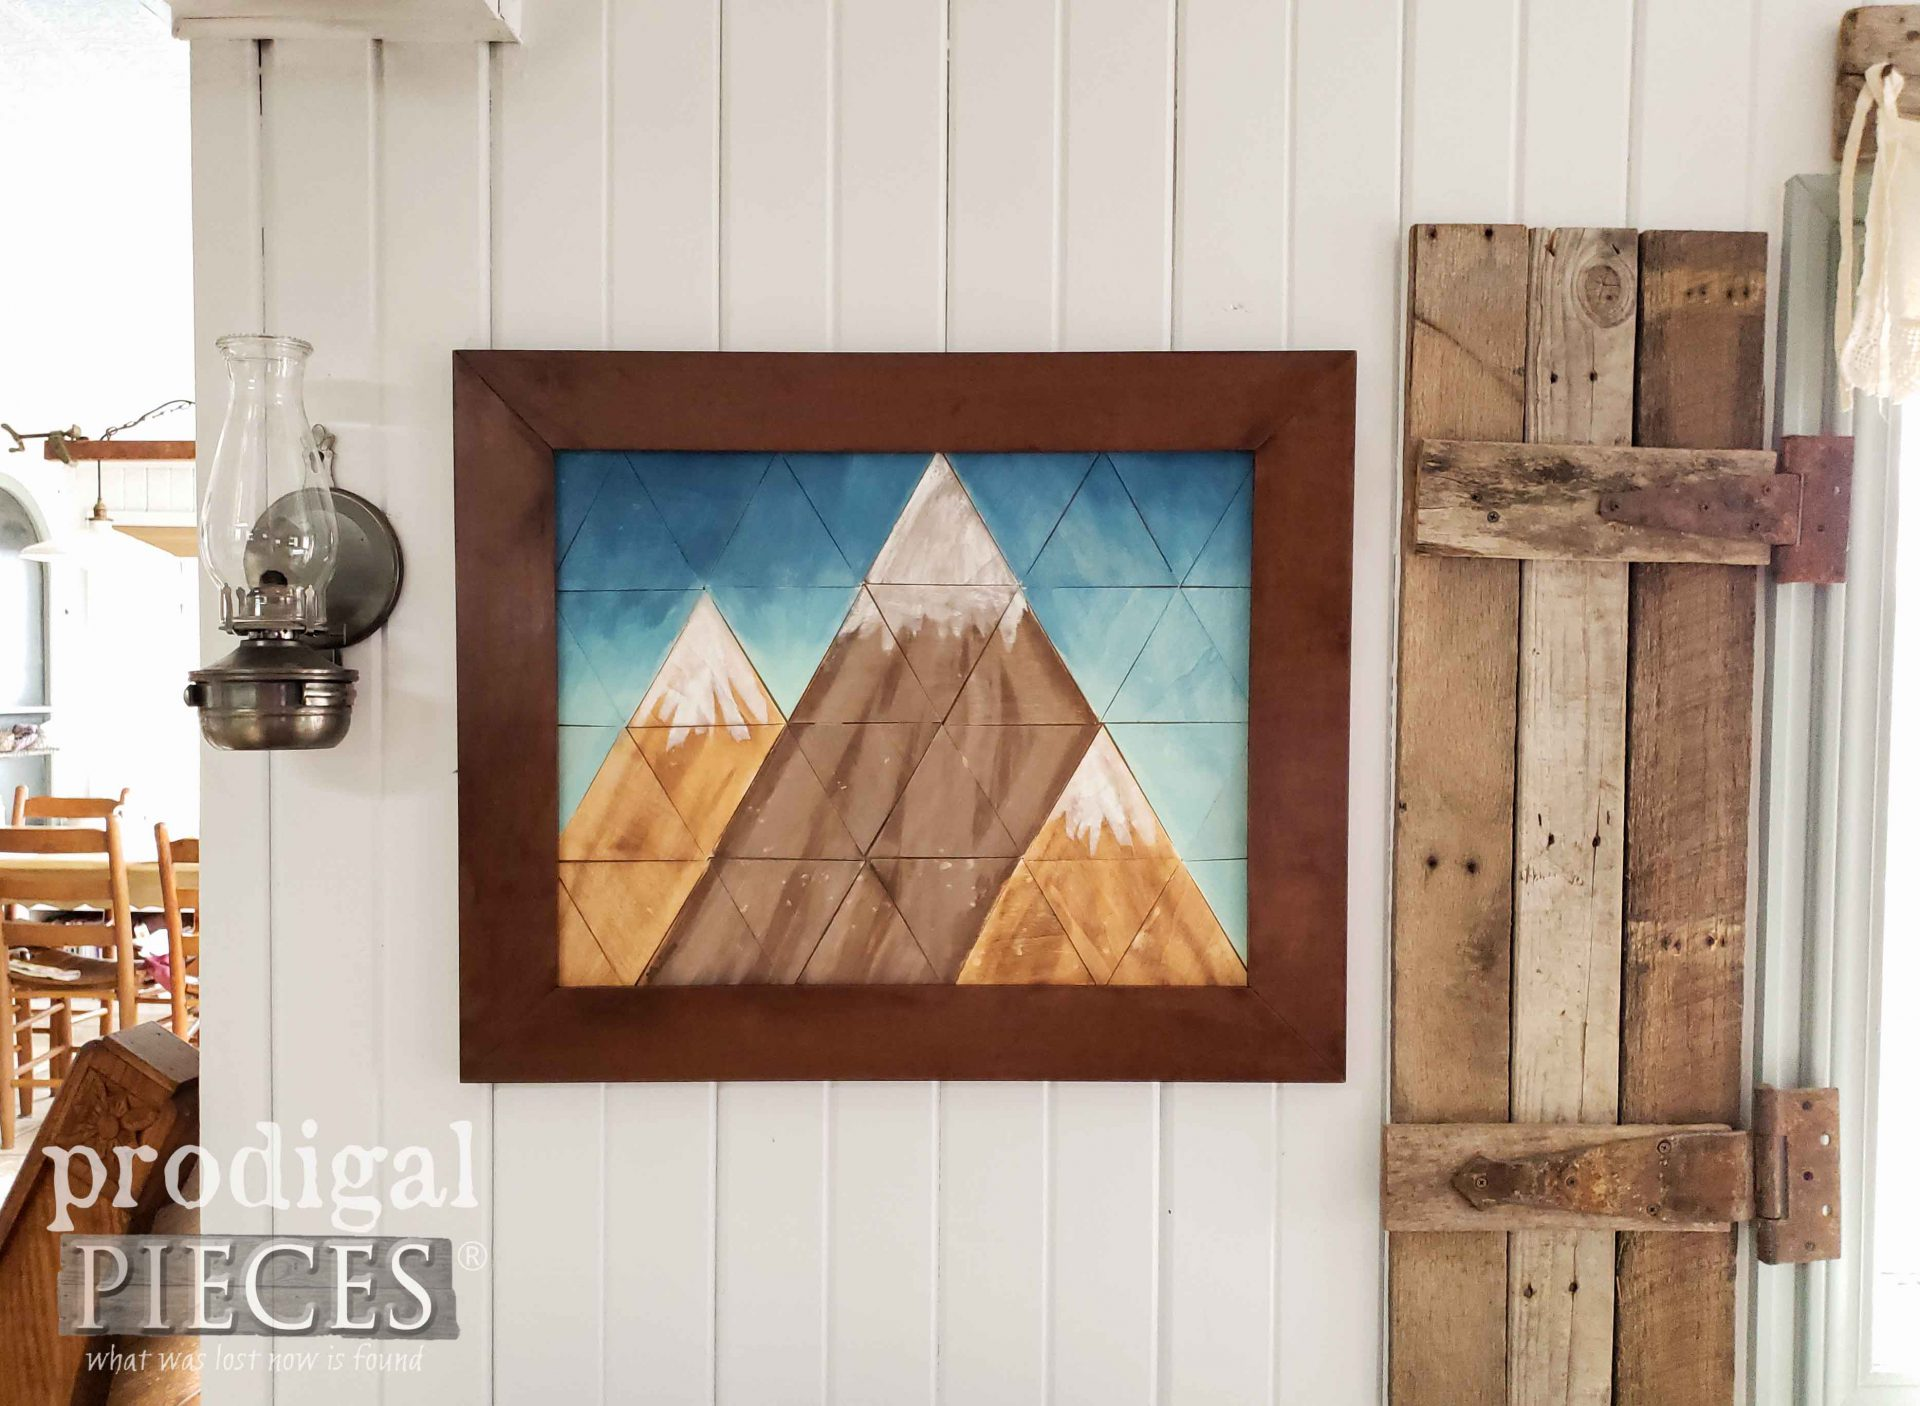 Geometric Mountain Art Created and Painted by Larissa of Prodigal Pieces | prodigalpieces.com #prodigalpieces #art #home #homedecor #farmhouse #modern